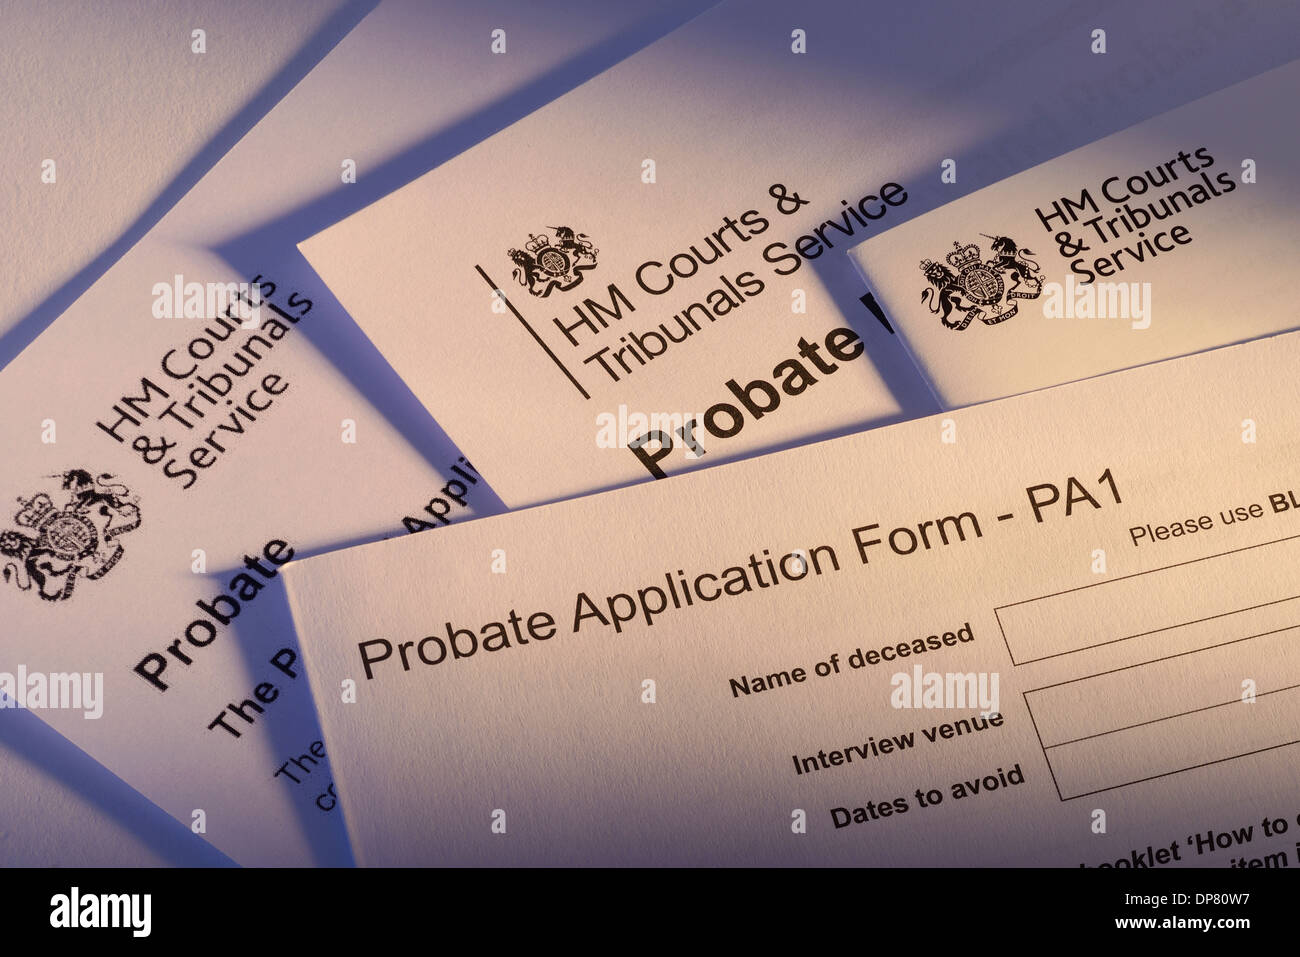 Paperwork and forms from HM Courts & Tribunals Service for Probate - Stock Image